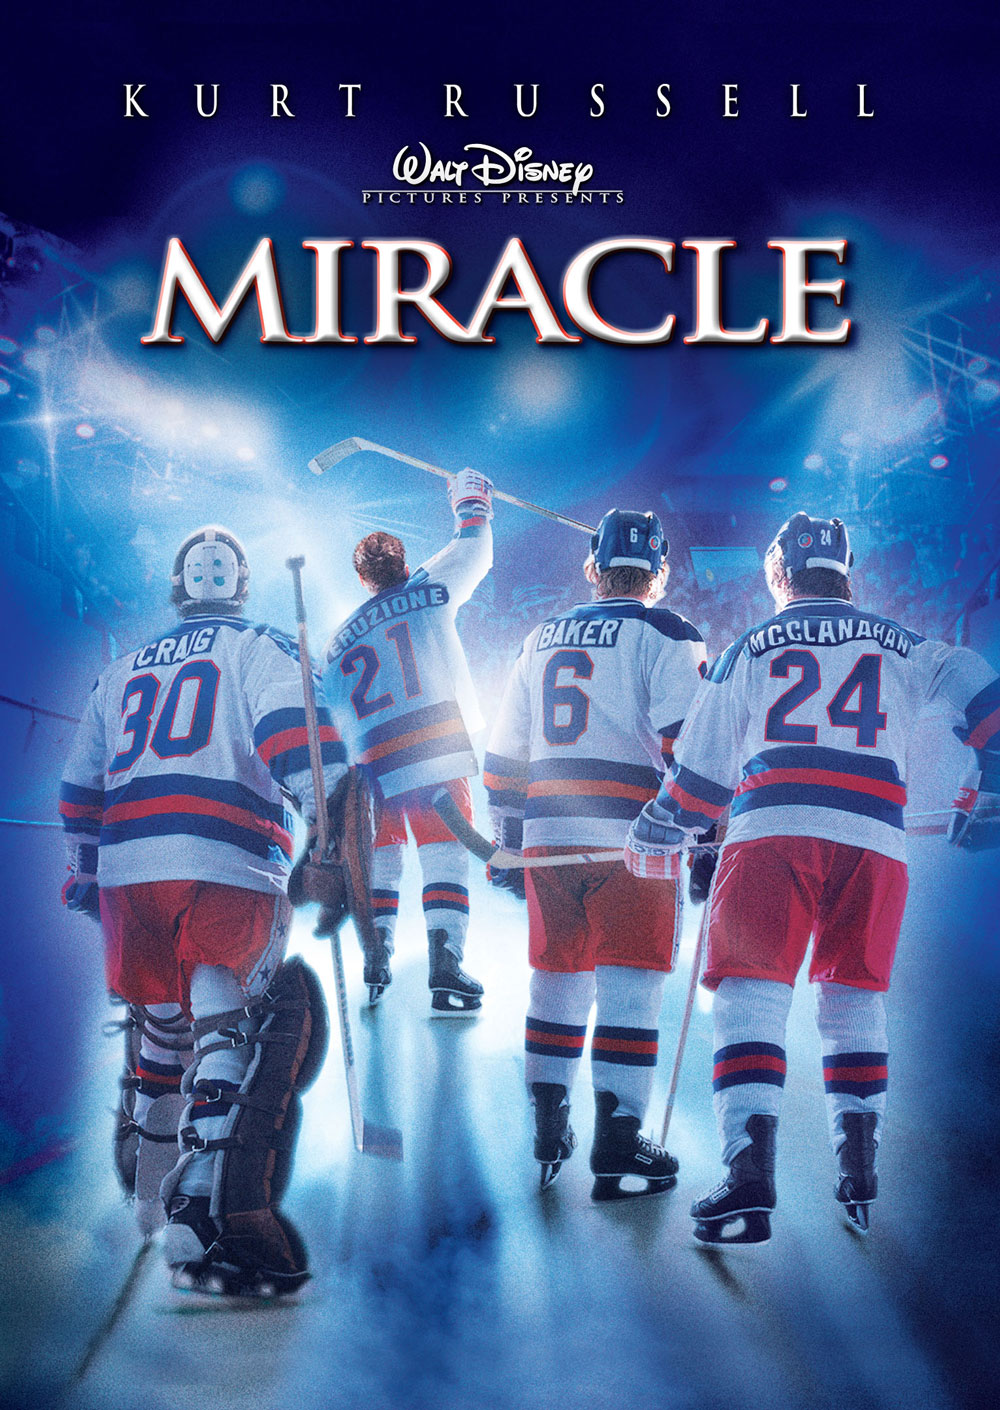 walt disney company walt disney pictures affiche miracle poster